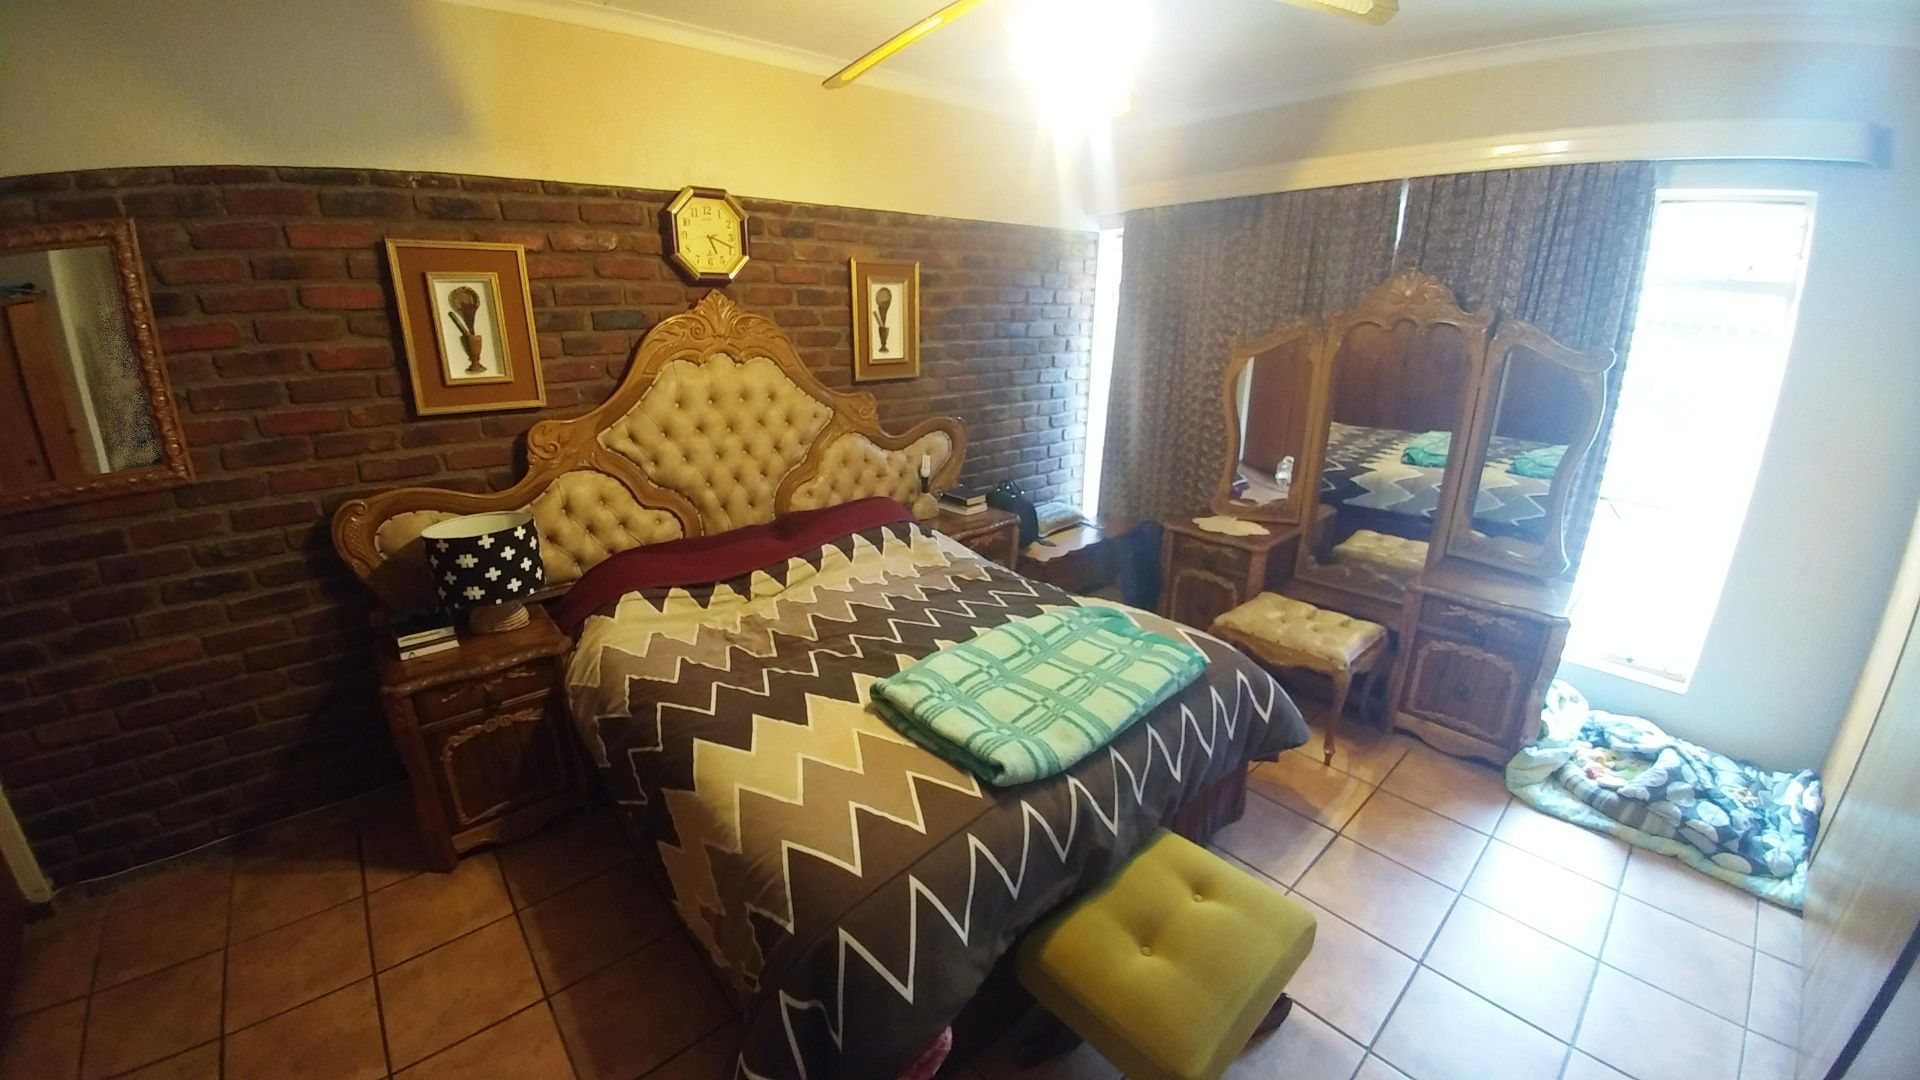 Potchefstroom Central property for sale. Ref No: 13508234. Picture no 16